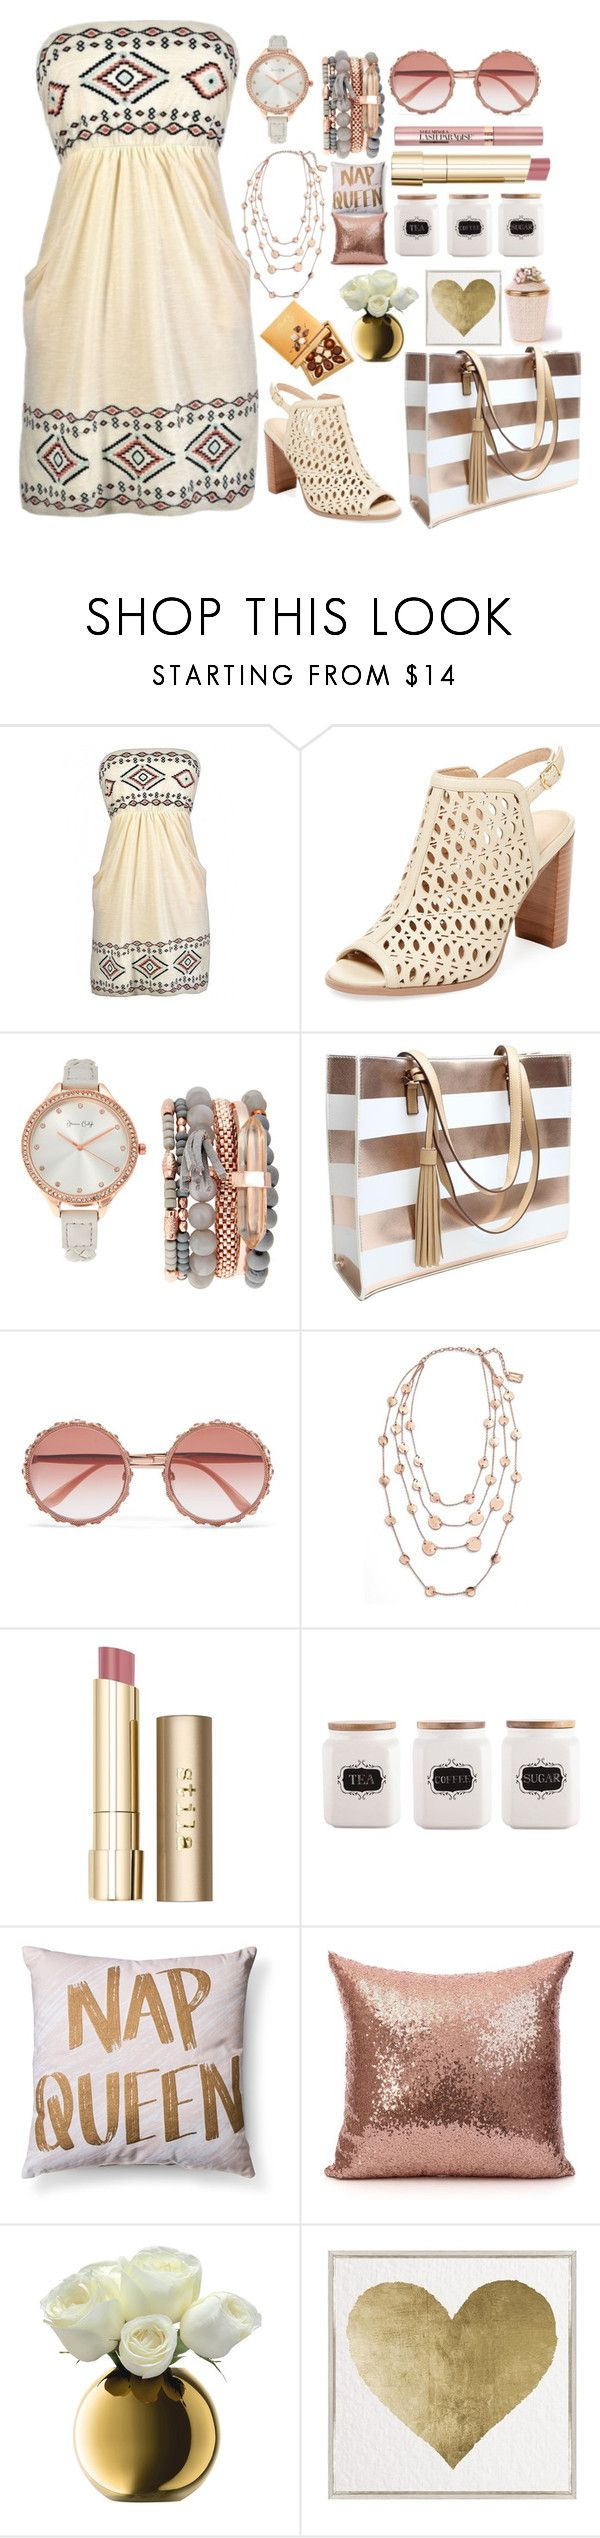 """South Western Summer"" by pulseofthematter ❤ liked on Polyvore featuring Renvy, Jessica Carlyle, Dolce&Gabbana, L'Oréal Paris, Karine Sultan, Stila, Lindt, LSA International, Oliver Gal Artist Co. and Jay Strongwater"